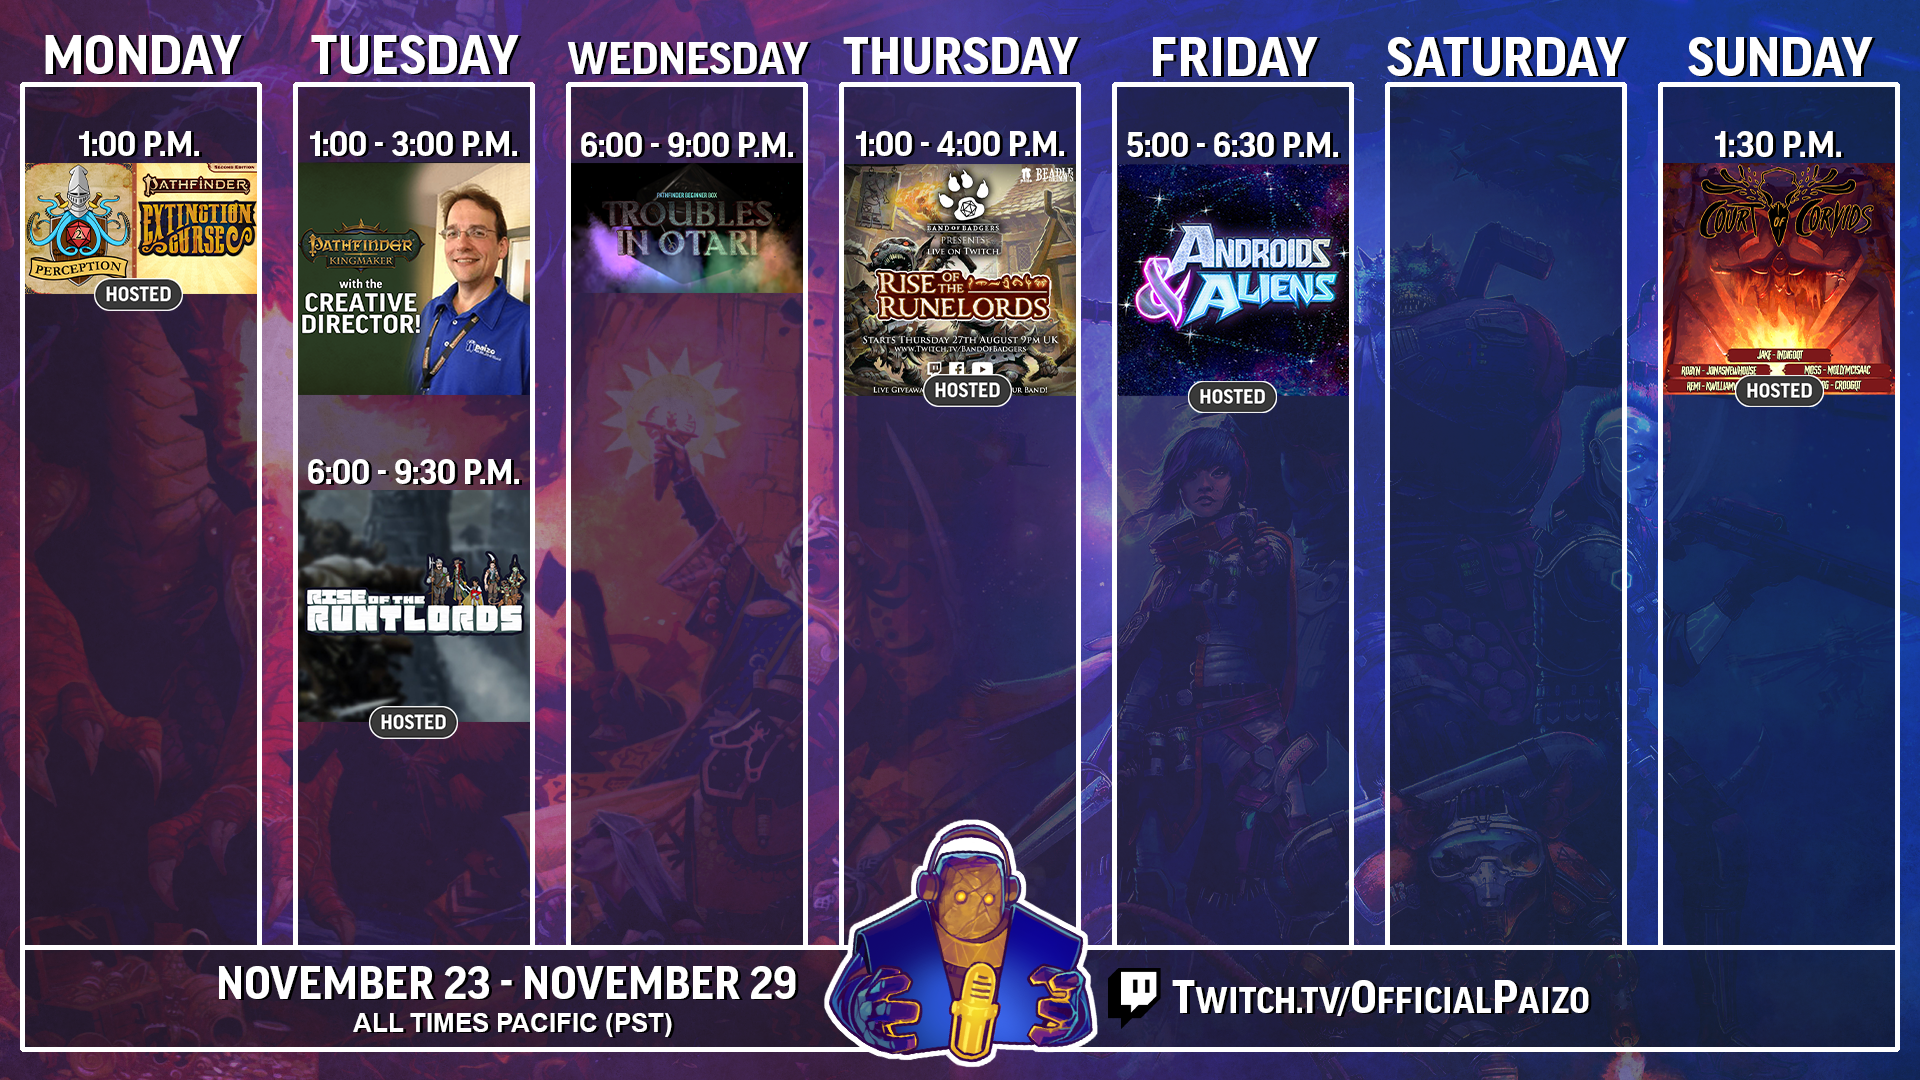 Official Paizo twitch streaming schedule for November 16th to the 22nd